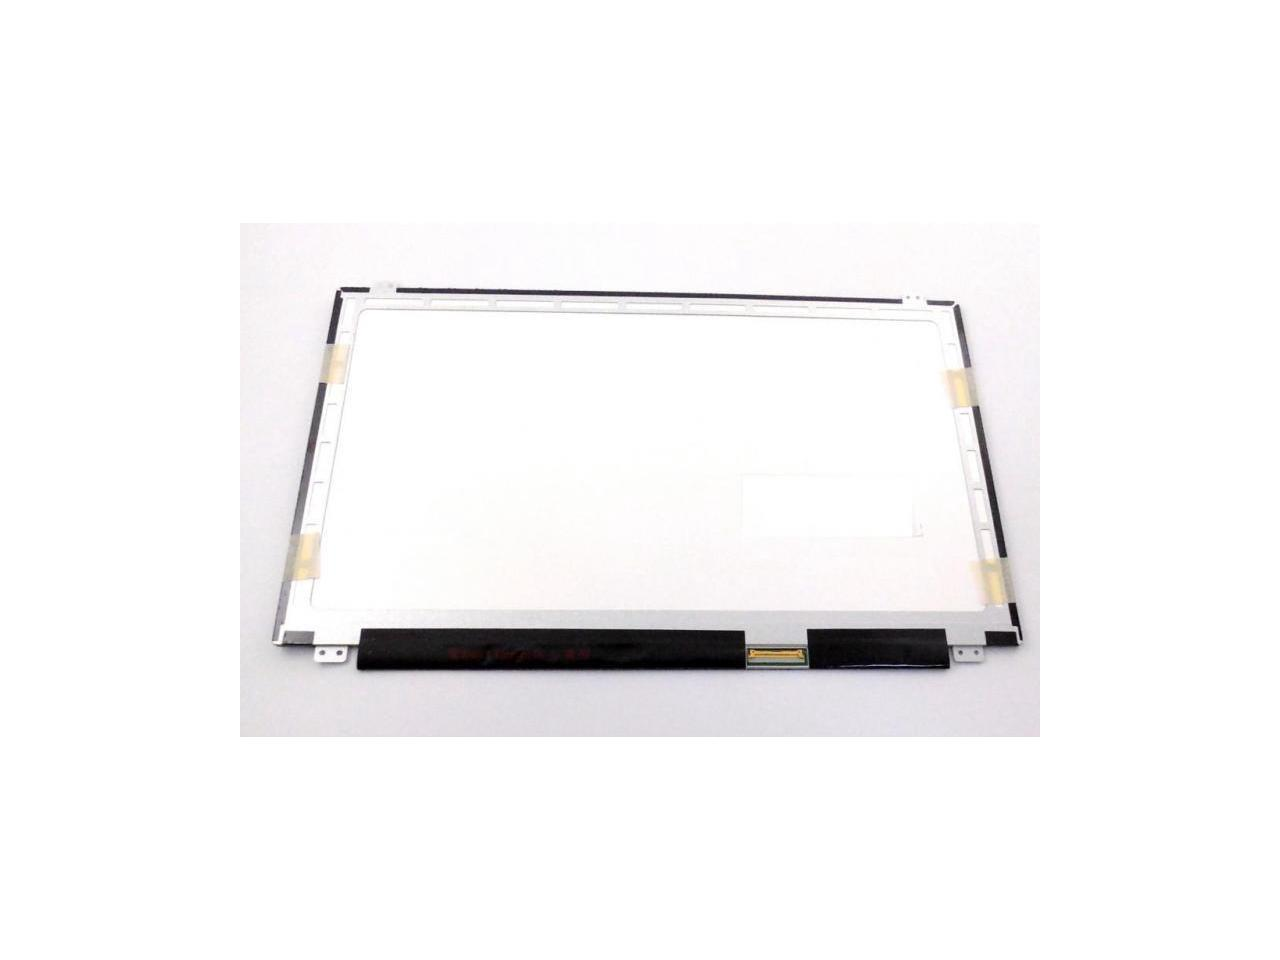 a2 Lg Philips Lp156whb LP156WHB-TLA2 tl Substitute Only. Not a Replacement LAPTOP LCD Screen 15.6 WXGA HD LED DIODE